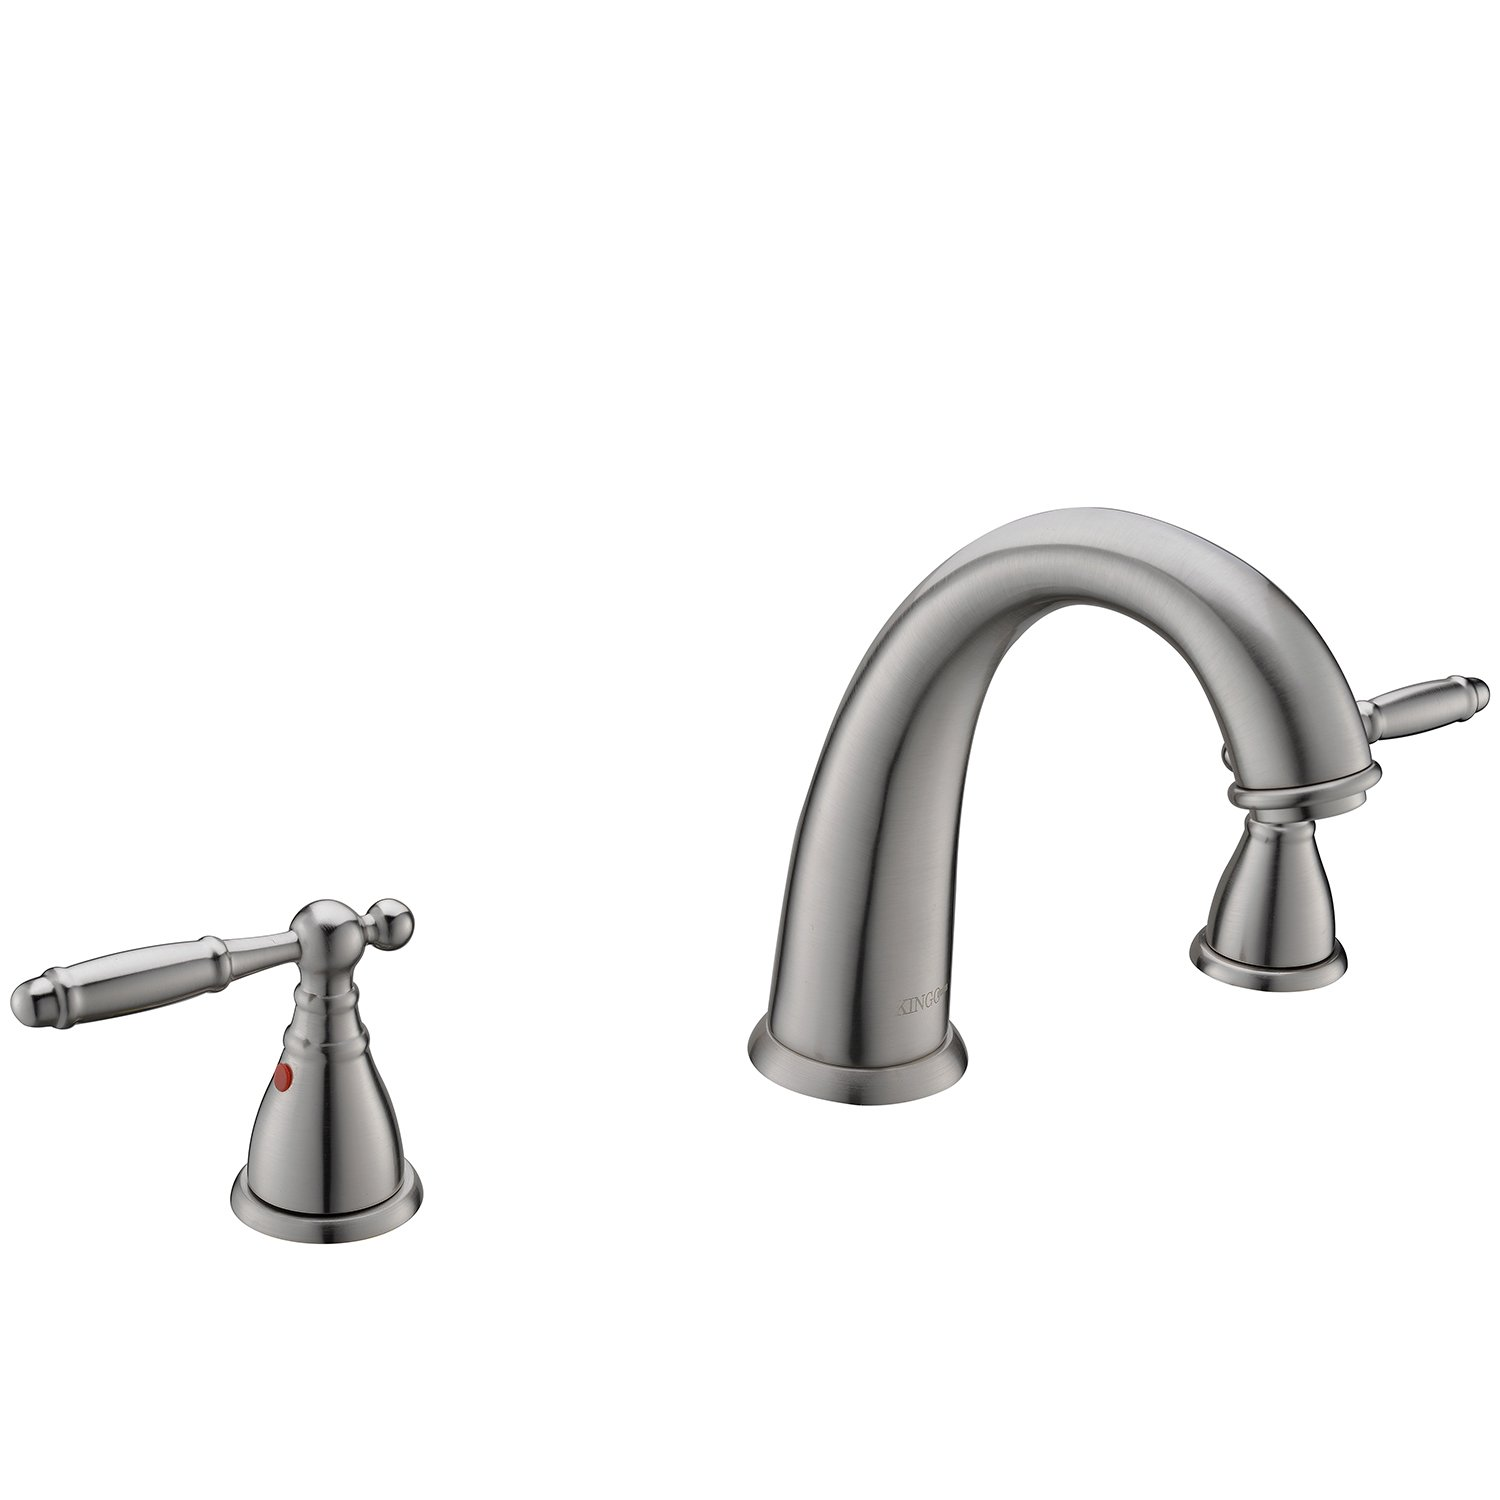 KINGO HOME Commercial Solid Brass Lavatory Three Holes Two Handle Lever Widespread Brushed Nickel Bathroom Faucet, Bathroom Sink Faucet Without Pop Up Drain